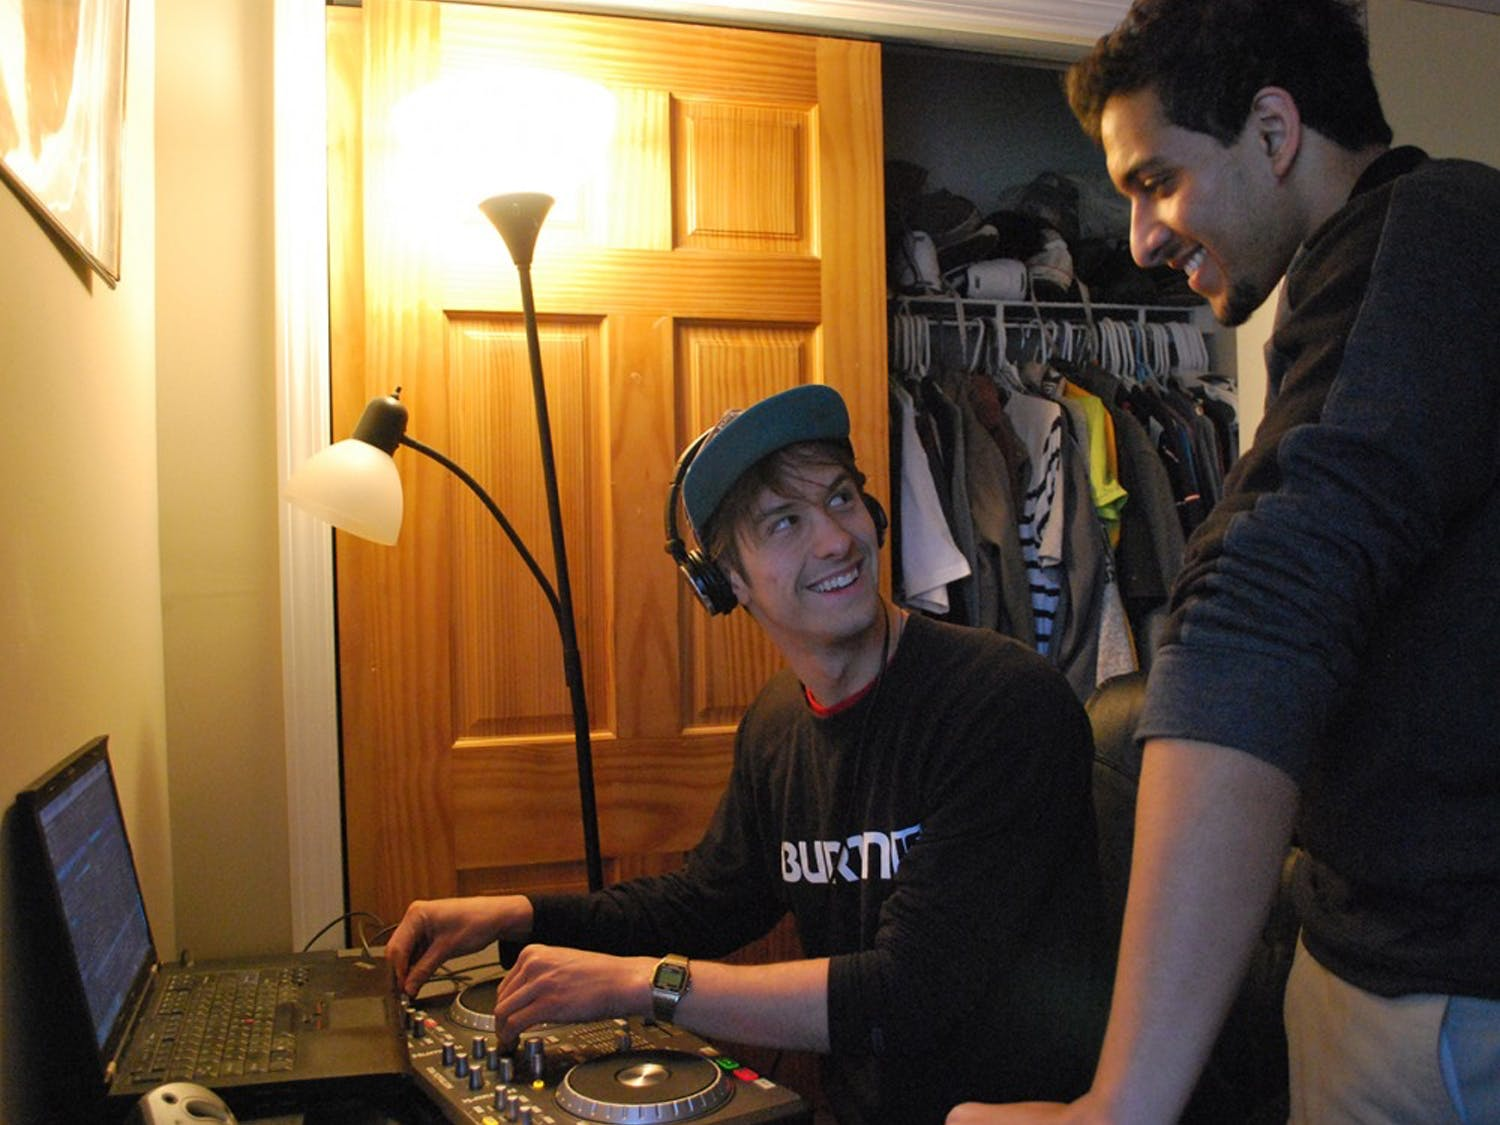 """Seniors Brandon Schell, DJ Bdo and Syem Barakzai, DJ Eskay have been mixing together since their sophomore year. Barakzai says his favorite part of being a DJ is """"throwing on a track you love and people coming out to dance to it.""""""""Throwing on a track you love and people coming out to dance to it,"""" Barakzai says on his favorite part about being a DJ."""